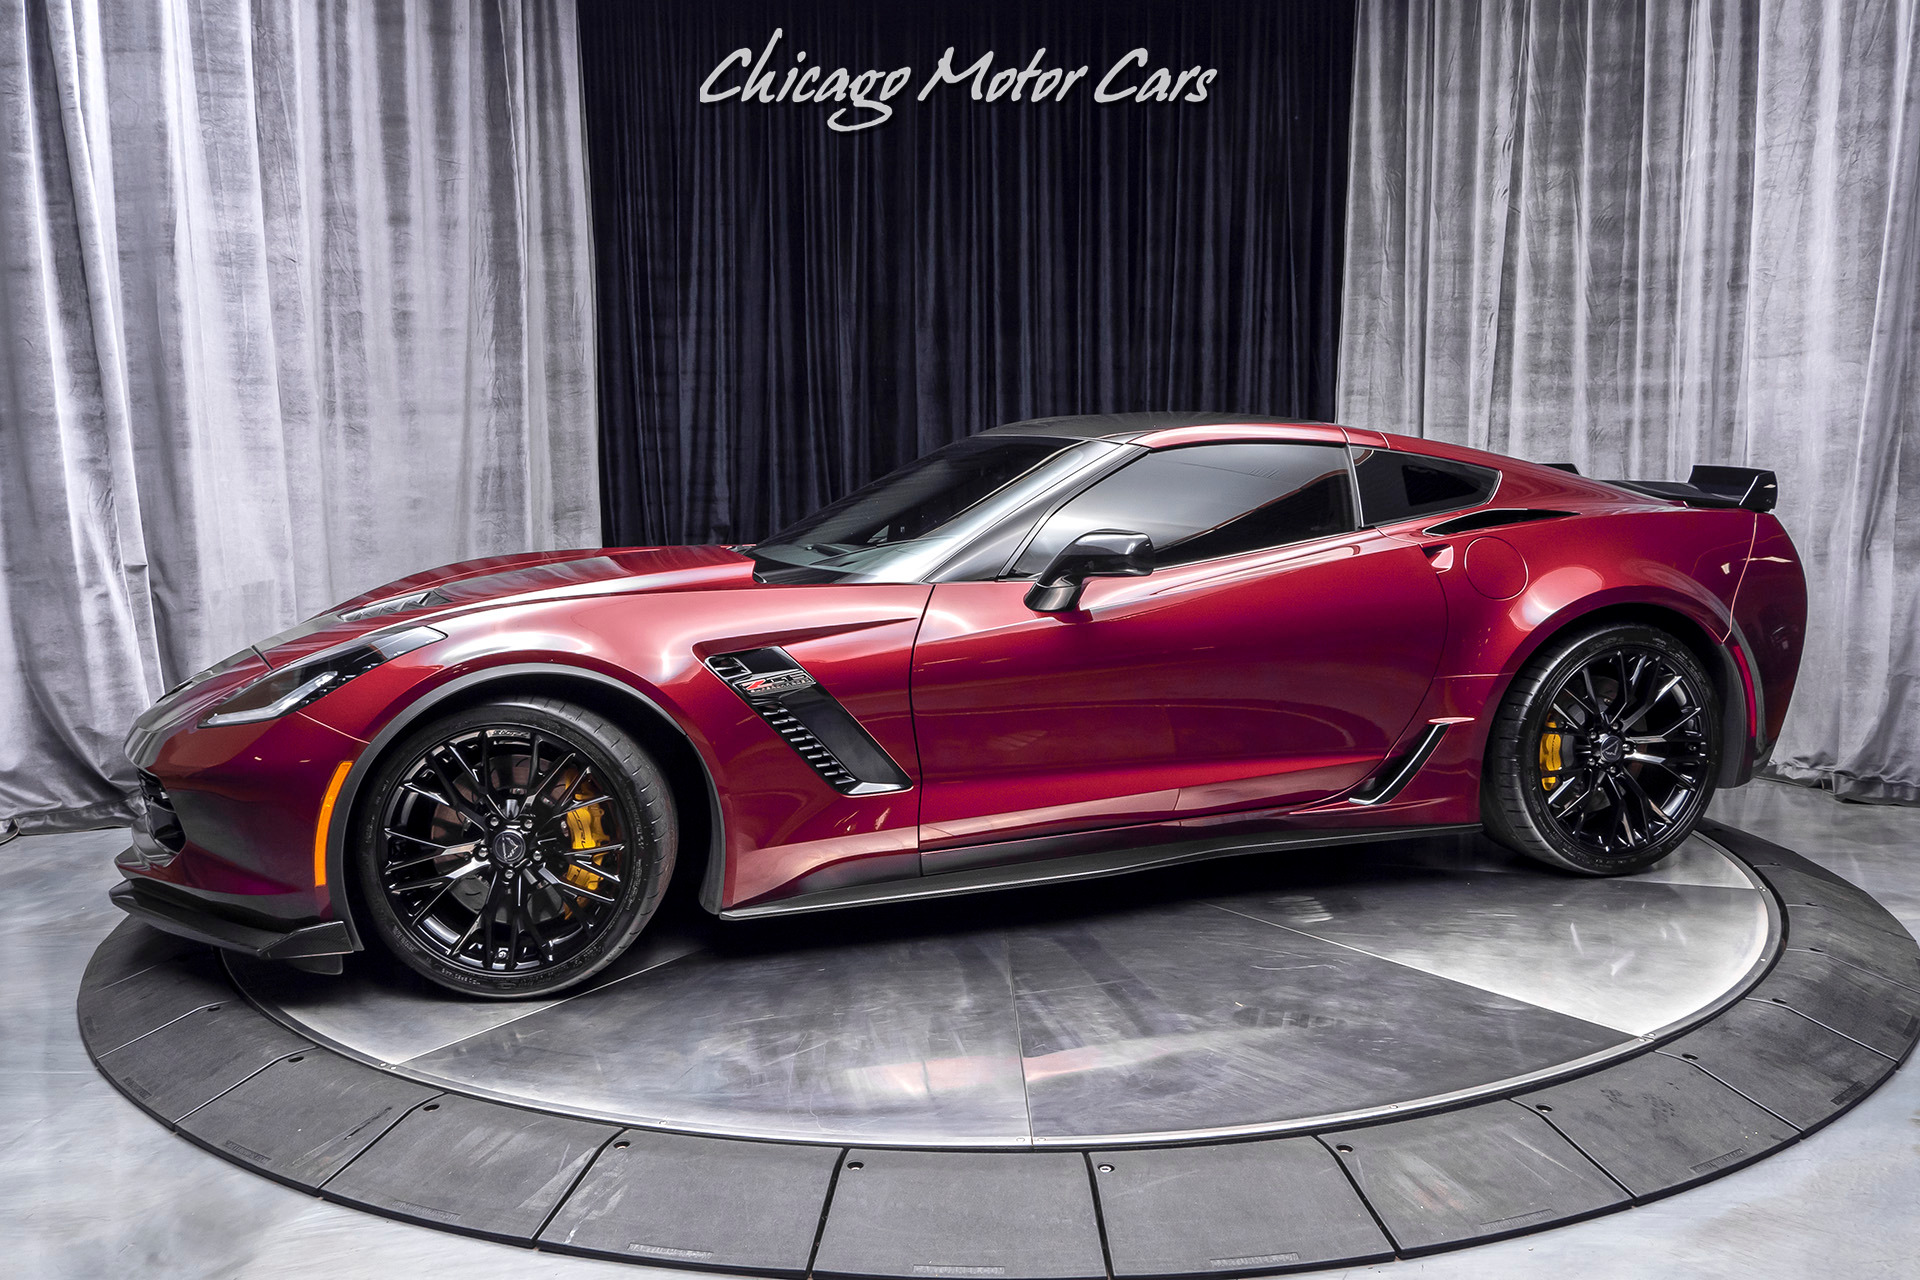 2016 Corvette Z06 For Sale >> Used 2016 Chevrolet Corvette Z06 2lz Coupe 7 Speed Manual For Sale